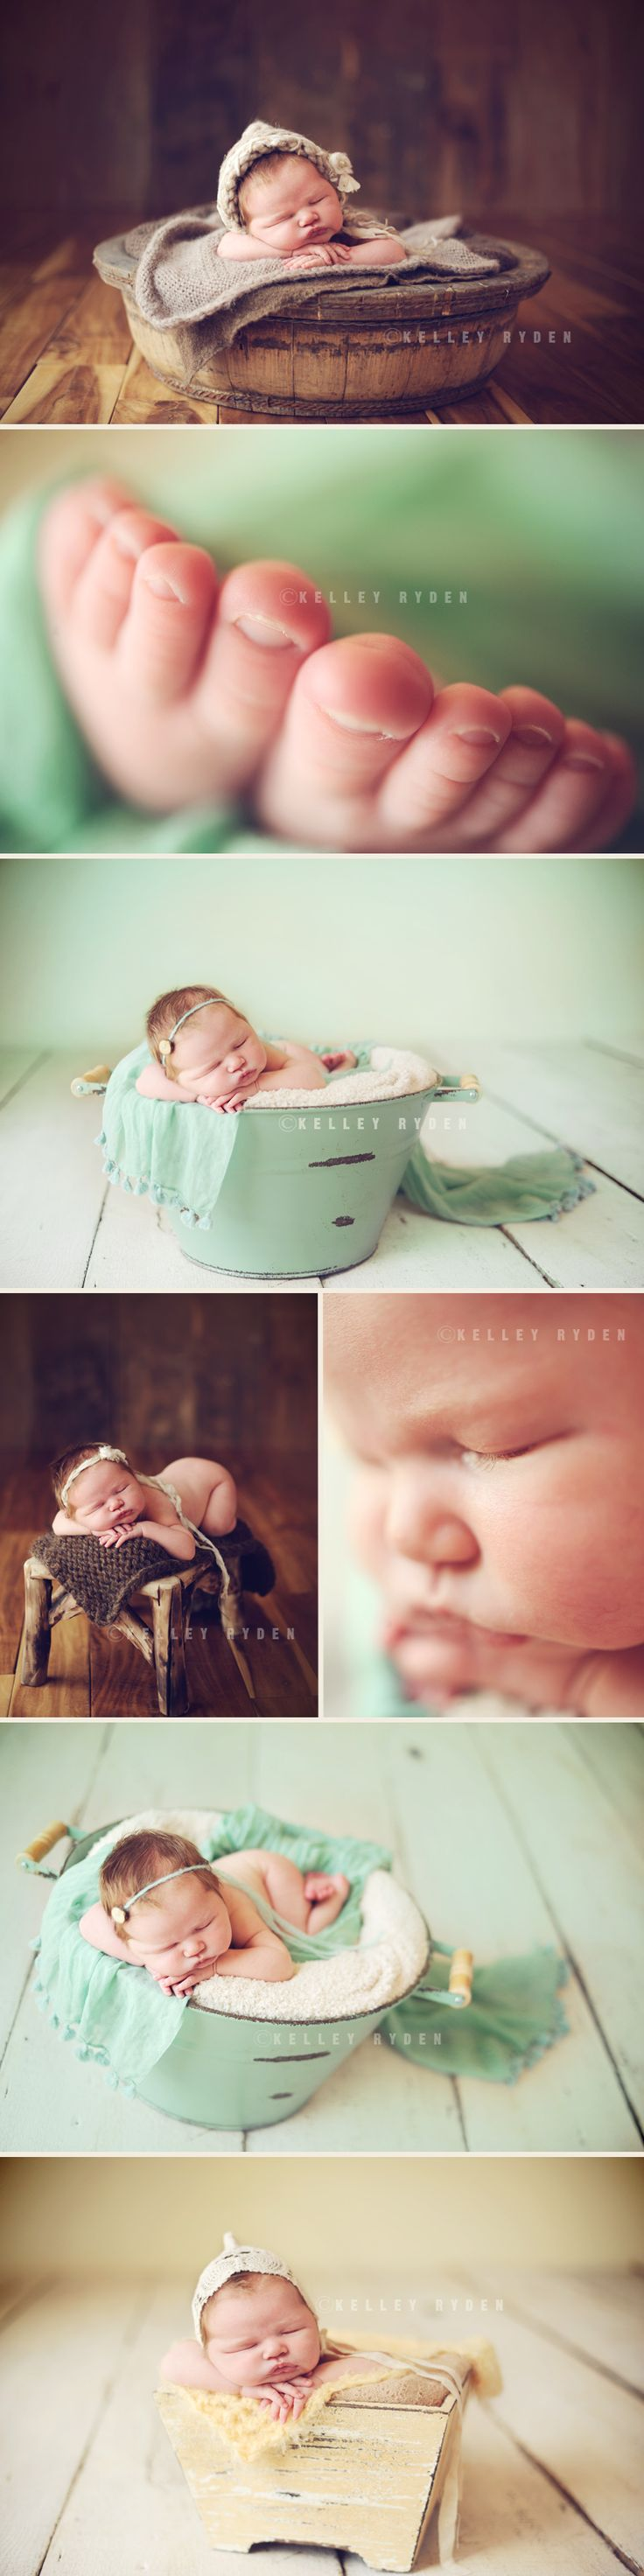 LOVE: Newborn Photography, Mint Green, Photo Ideas, Newborns Inspiration, Photo Props, Newborns Pics, Baby Photo, Newborns Photography, Newborns Poses